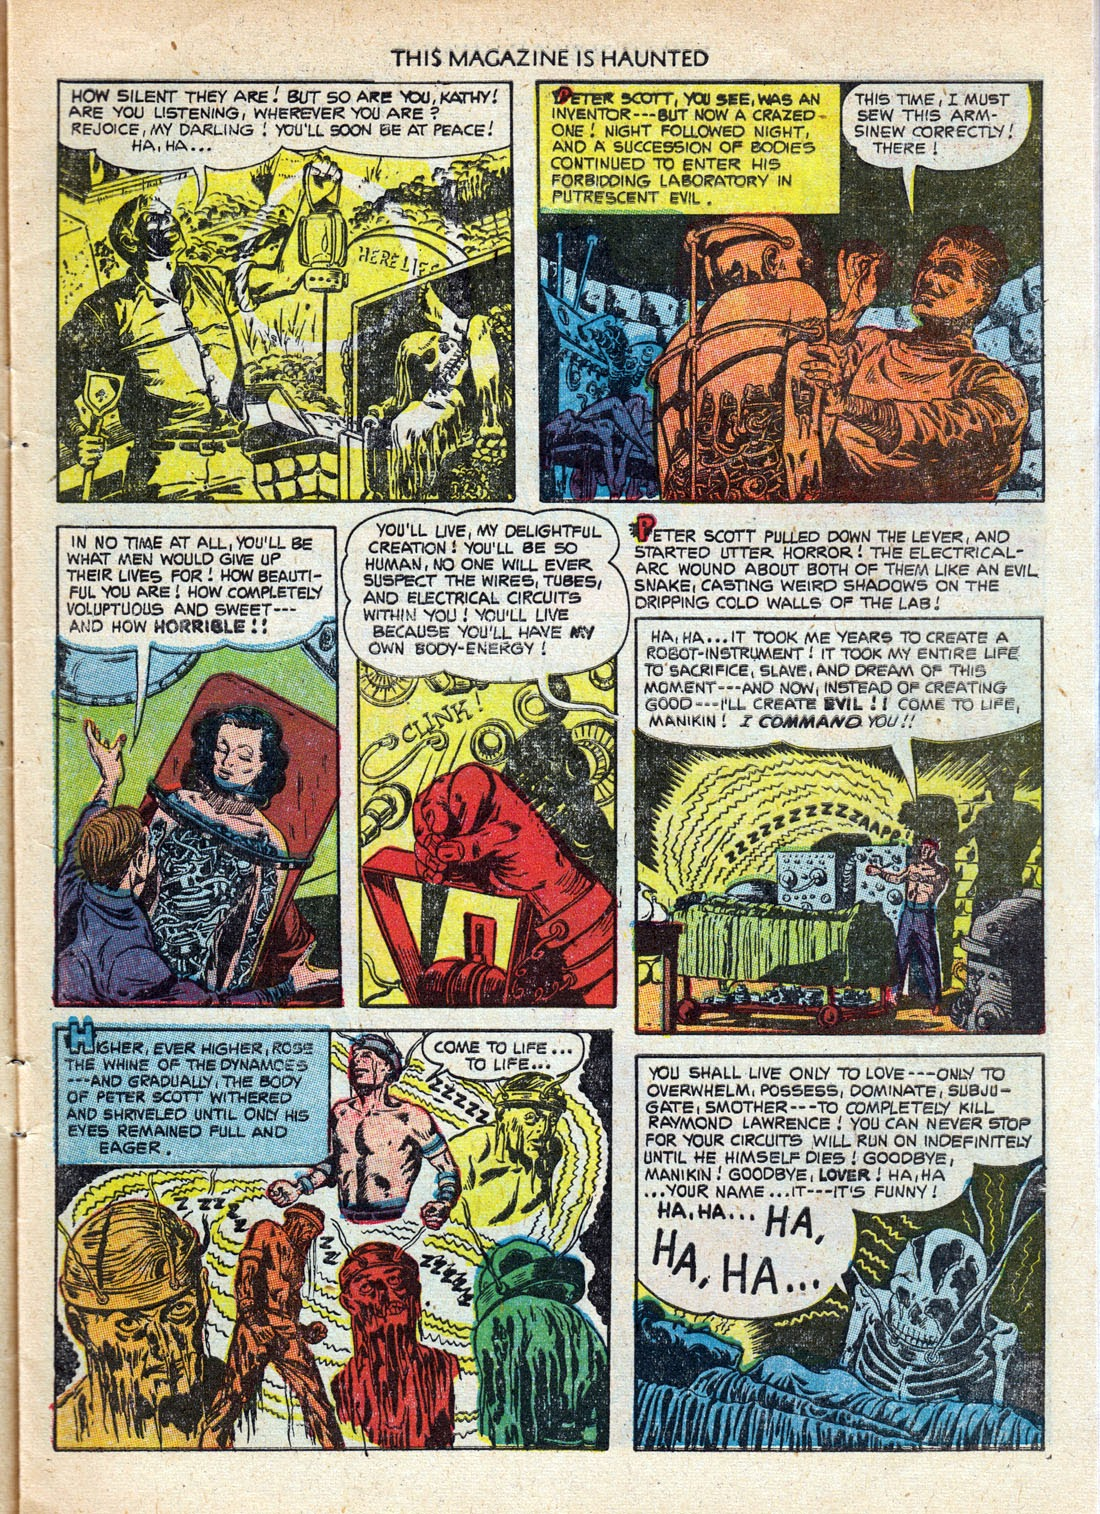 Read online This Magazine Is Haunted comic -  Issue #11 - 7